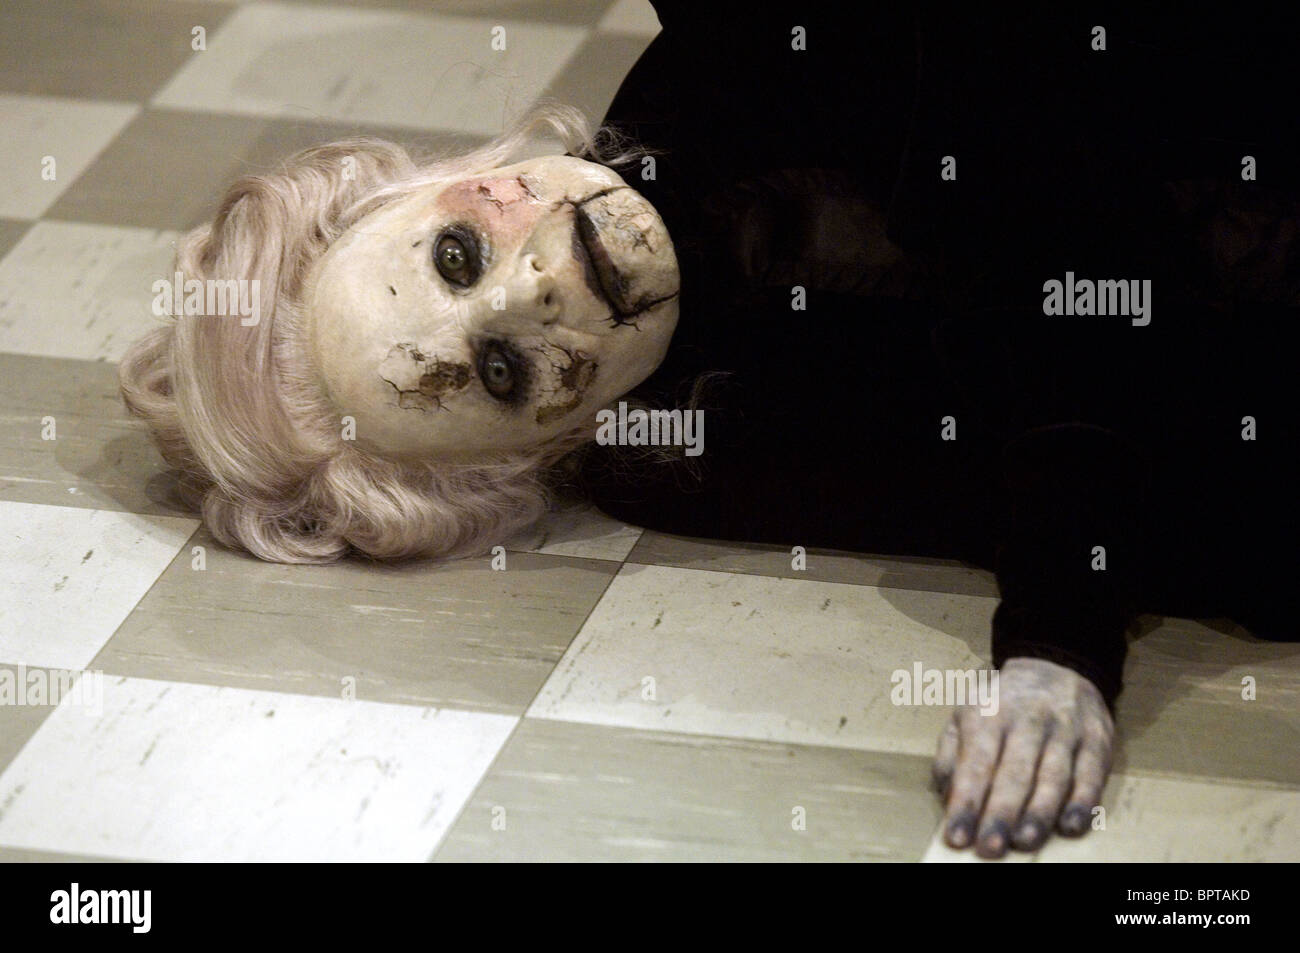 Judith Roberts Dead Silence 2007 Stock Photo Alamy